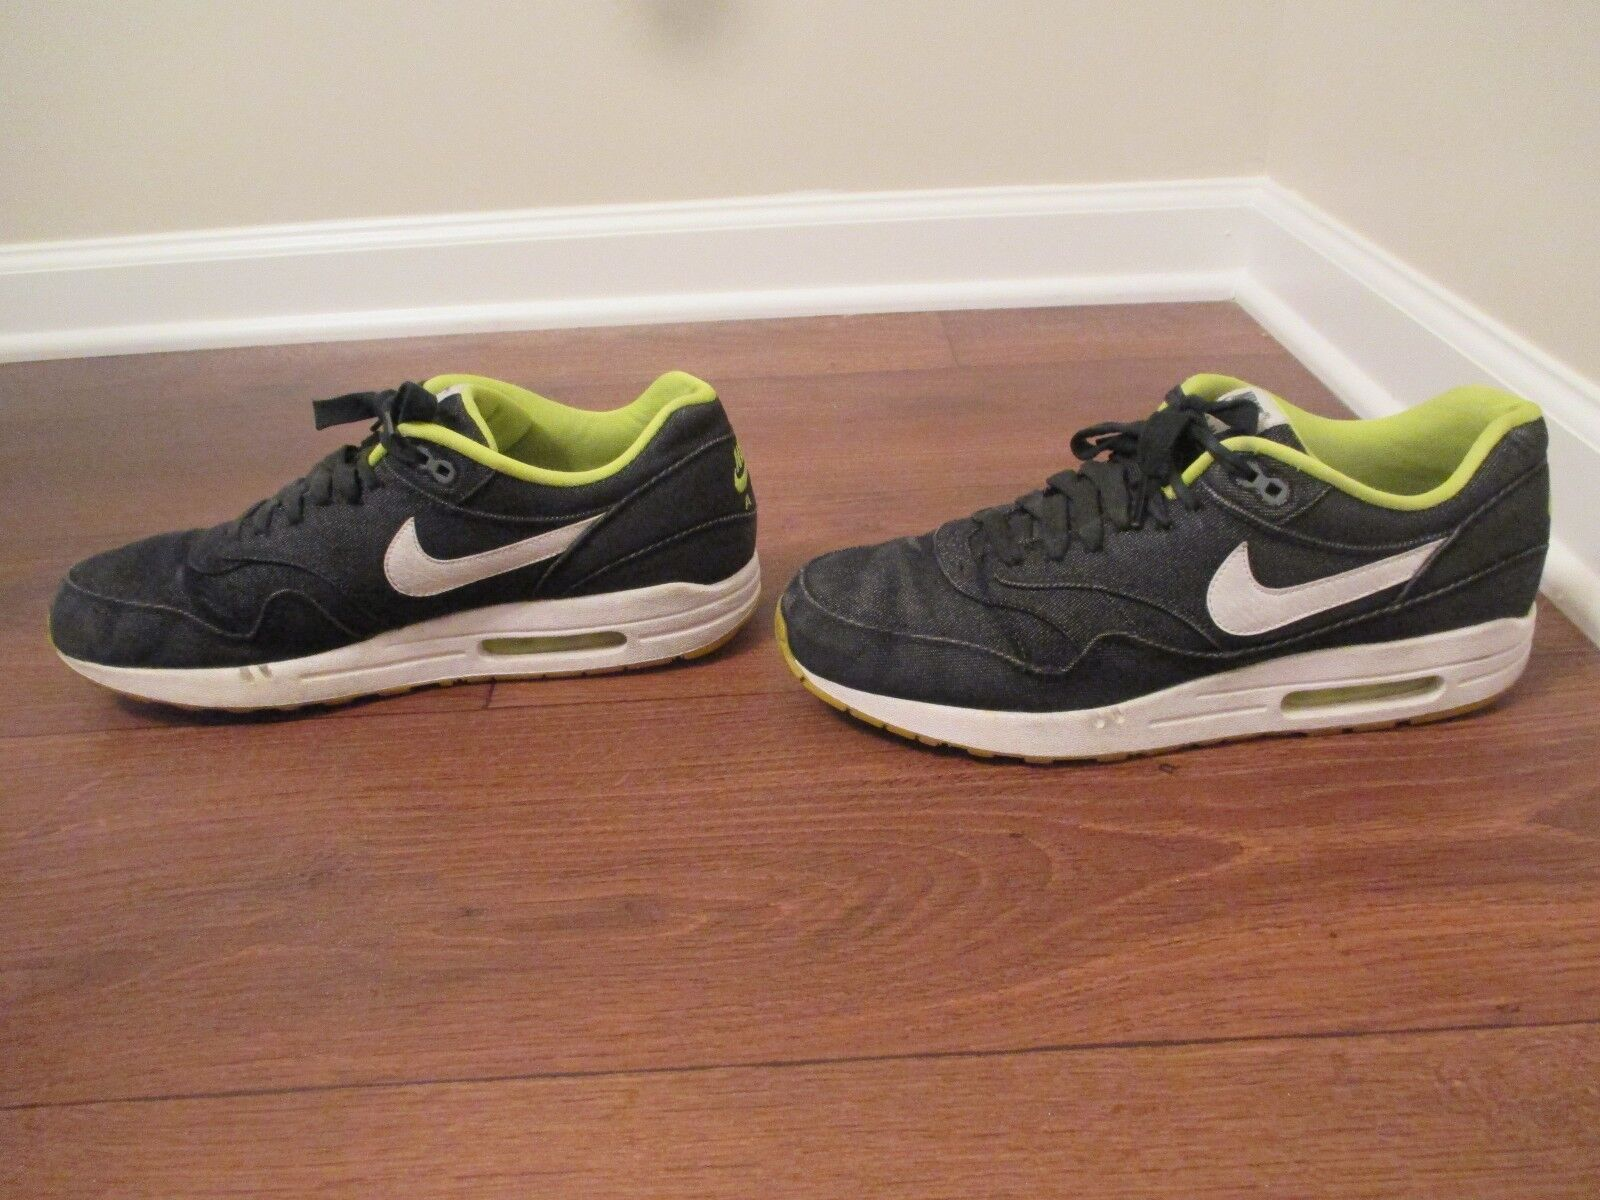 hot sales 76d4f 51814 ... Used Worn Size 12 12 12 Nike Air Max 1 PRM Shoes Black, White, ...